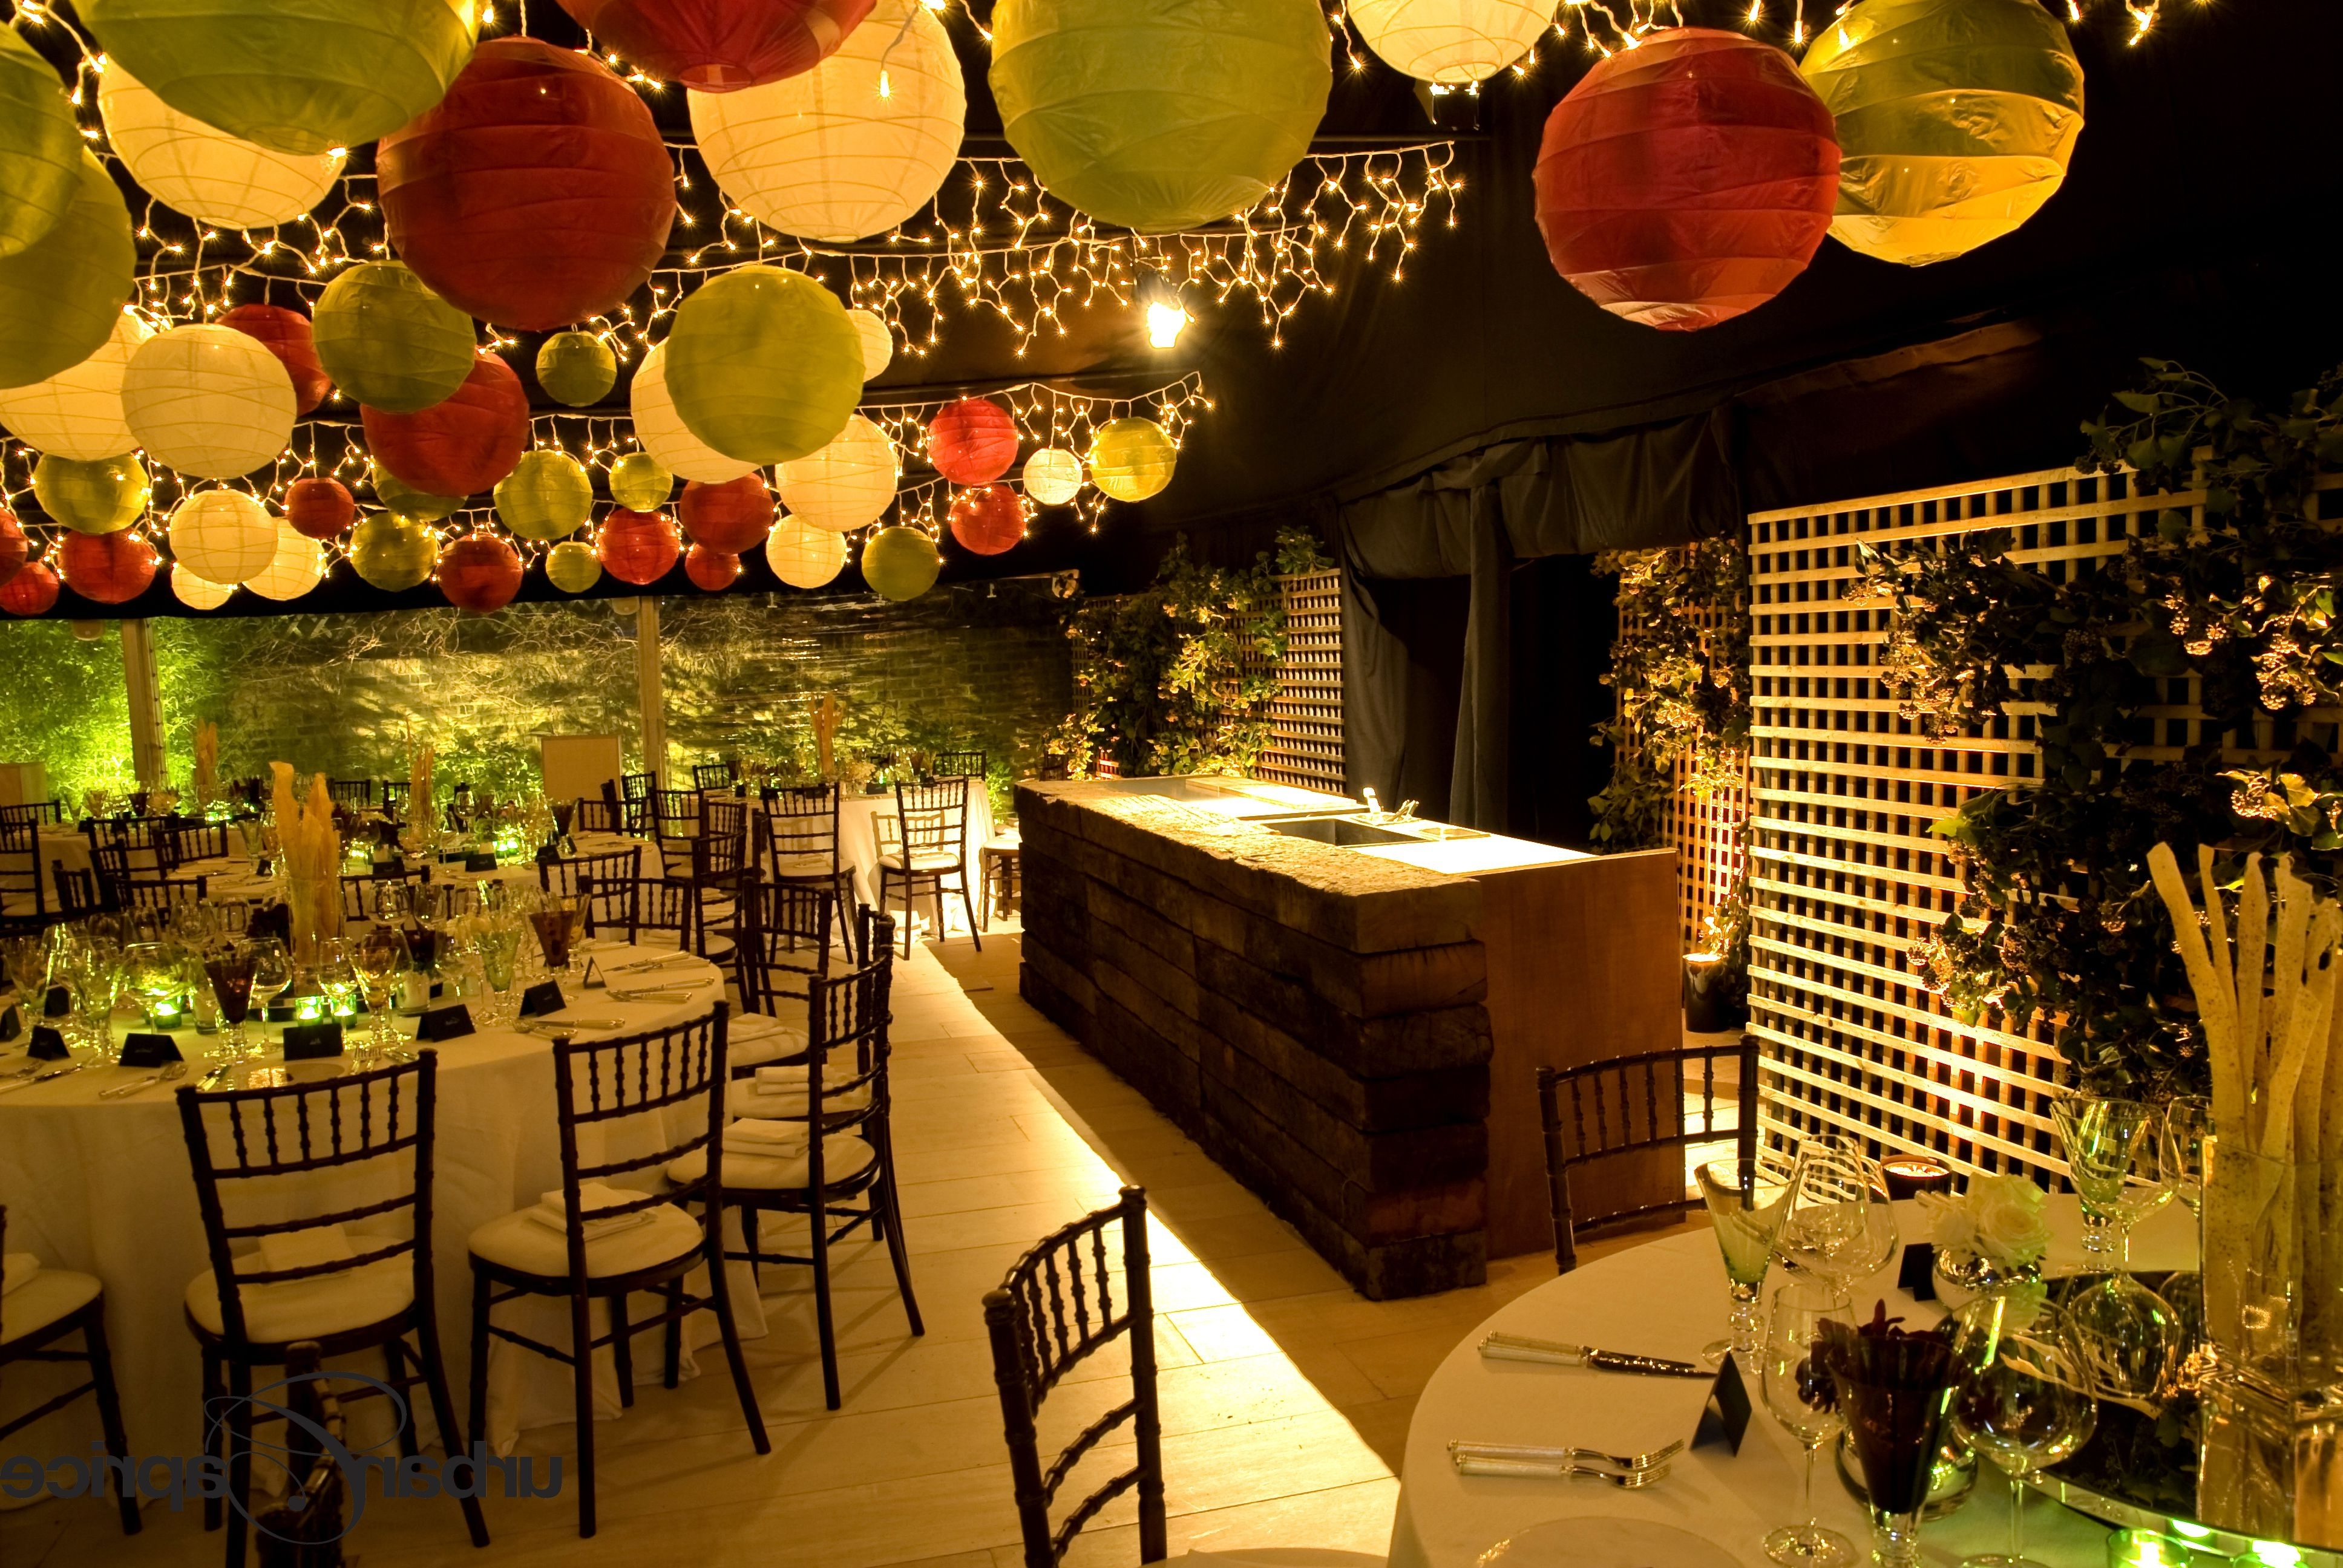 Outdoor Parties With Outdoor Lanterns For Parties (View 18 of 20)